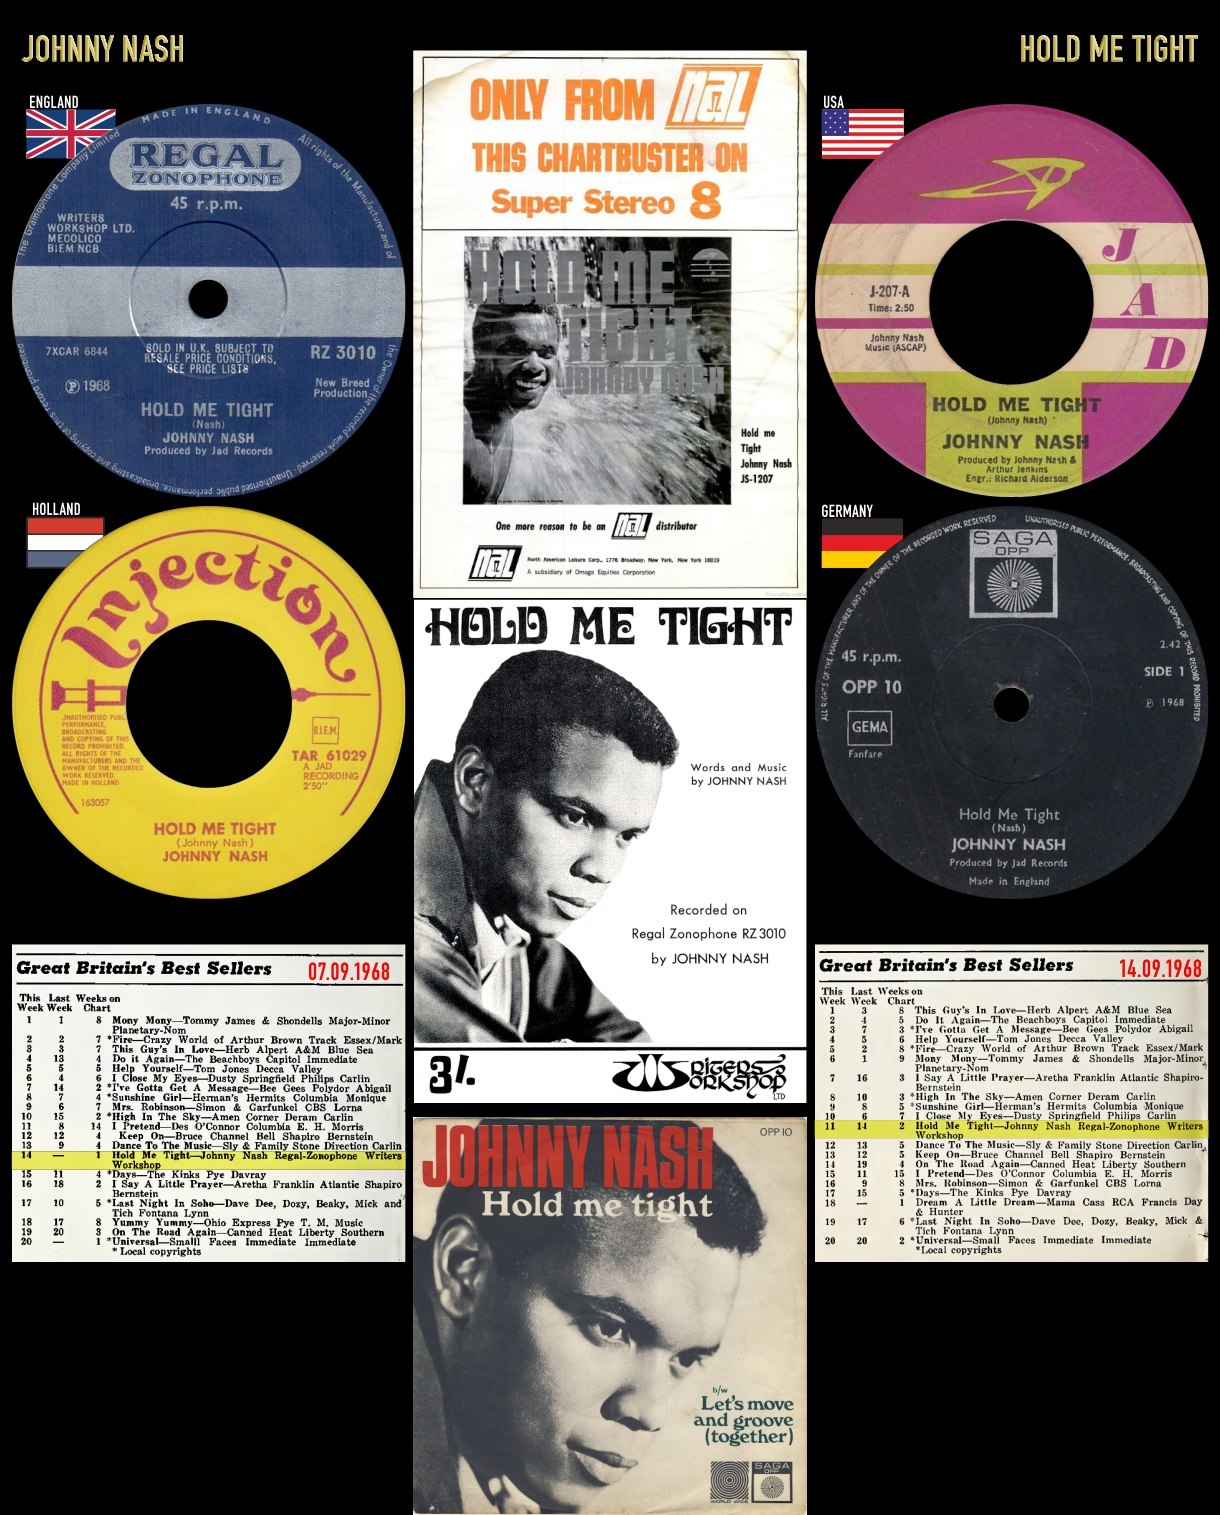 680914_Johnny Nash_Hold Me Tight